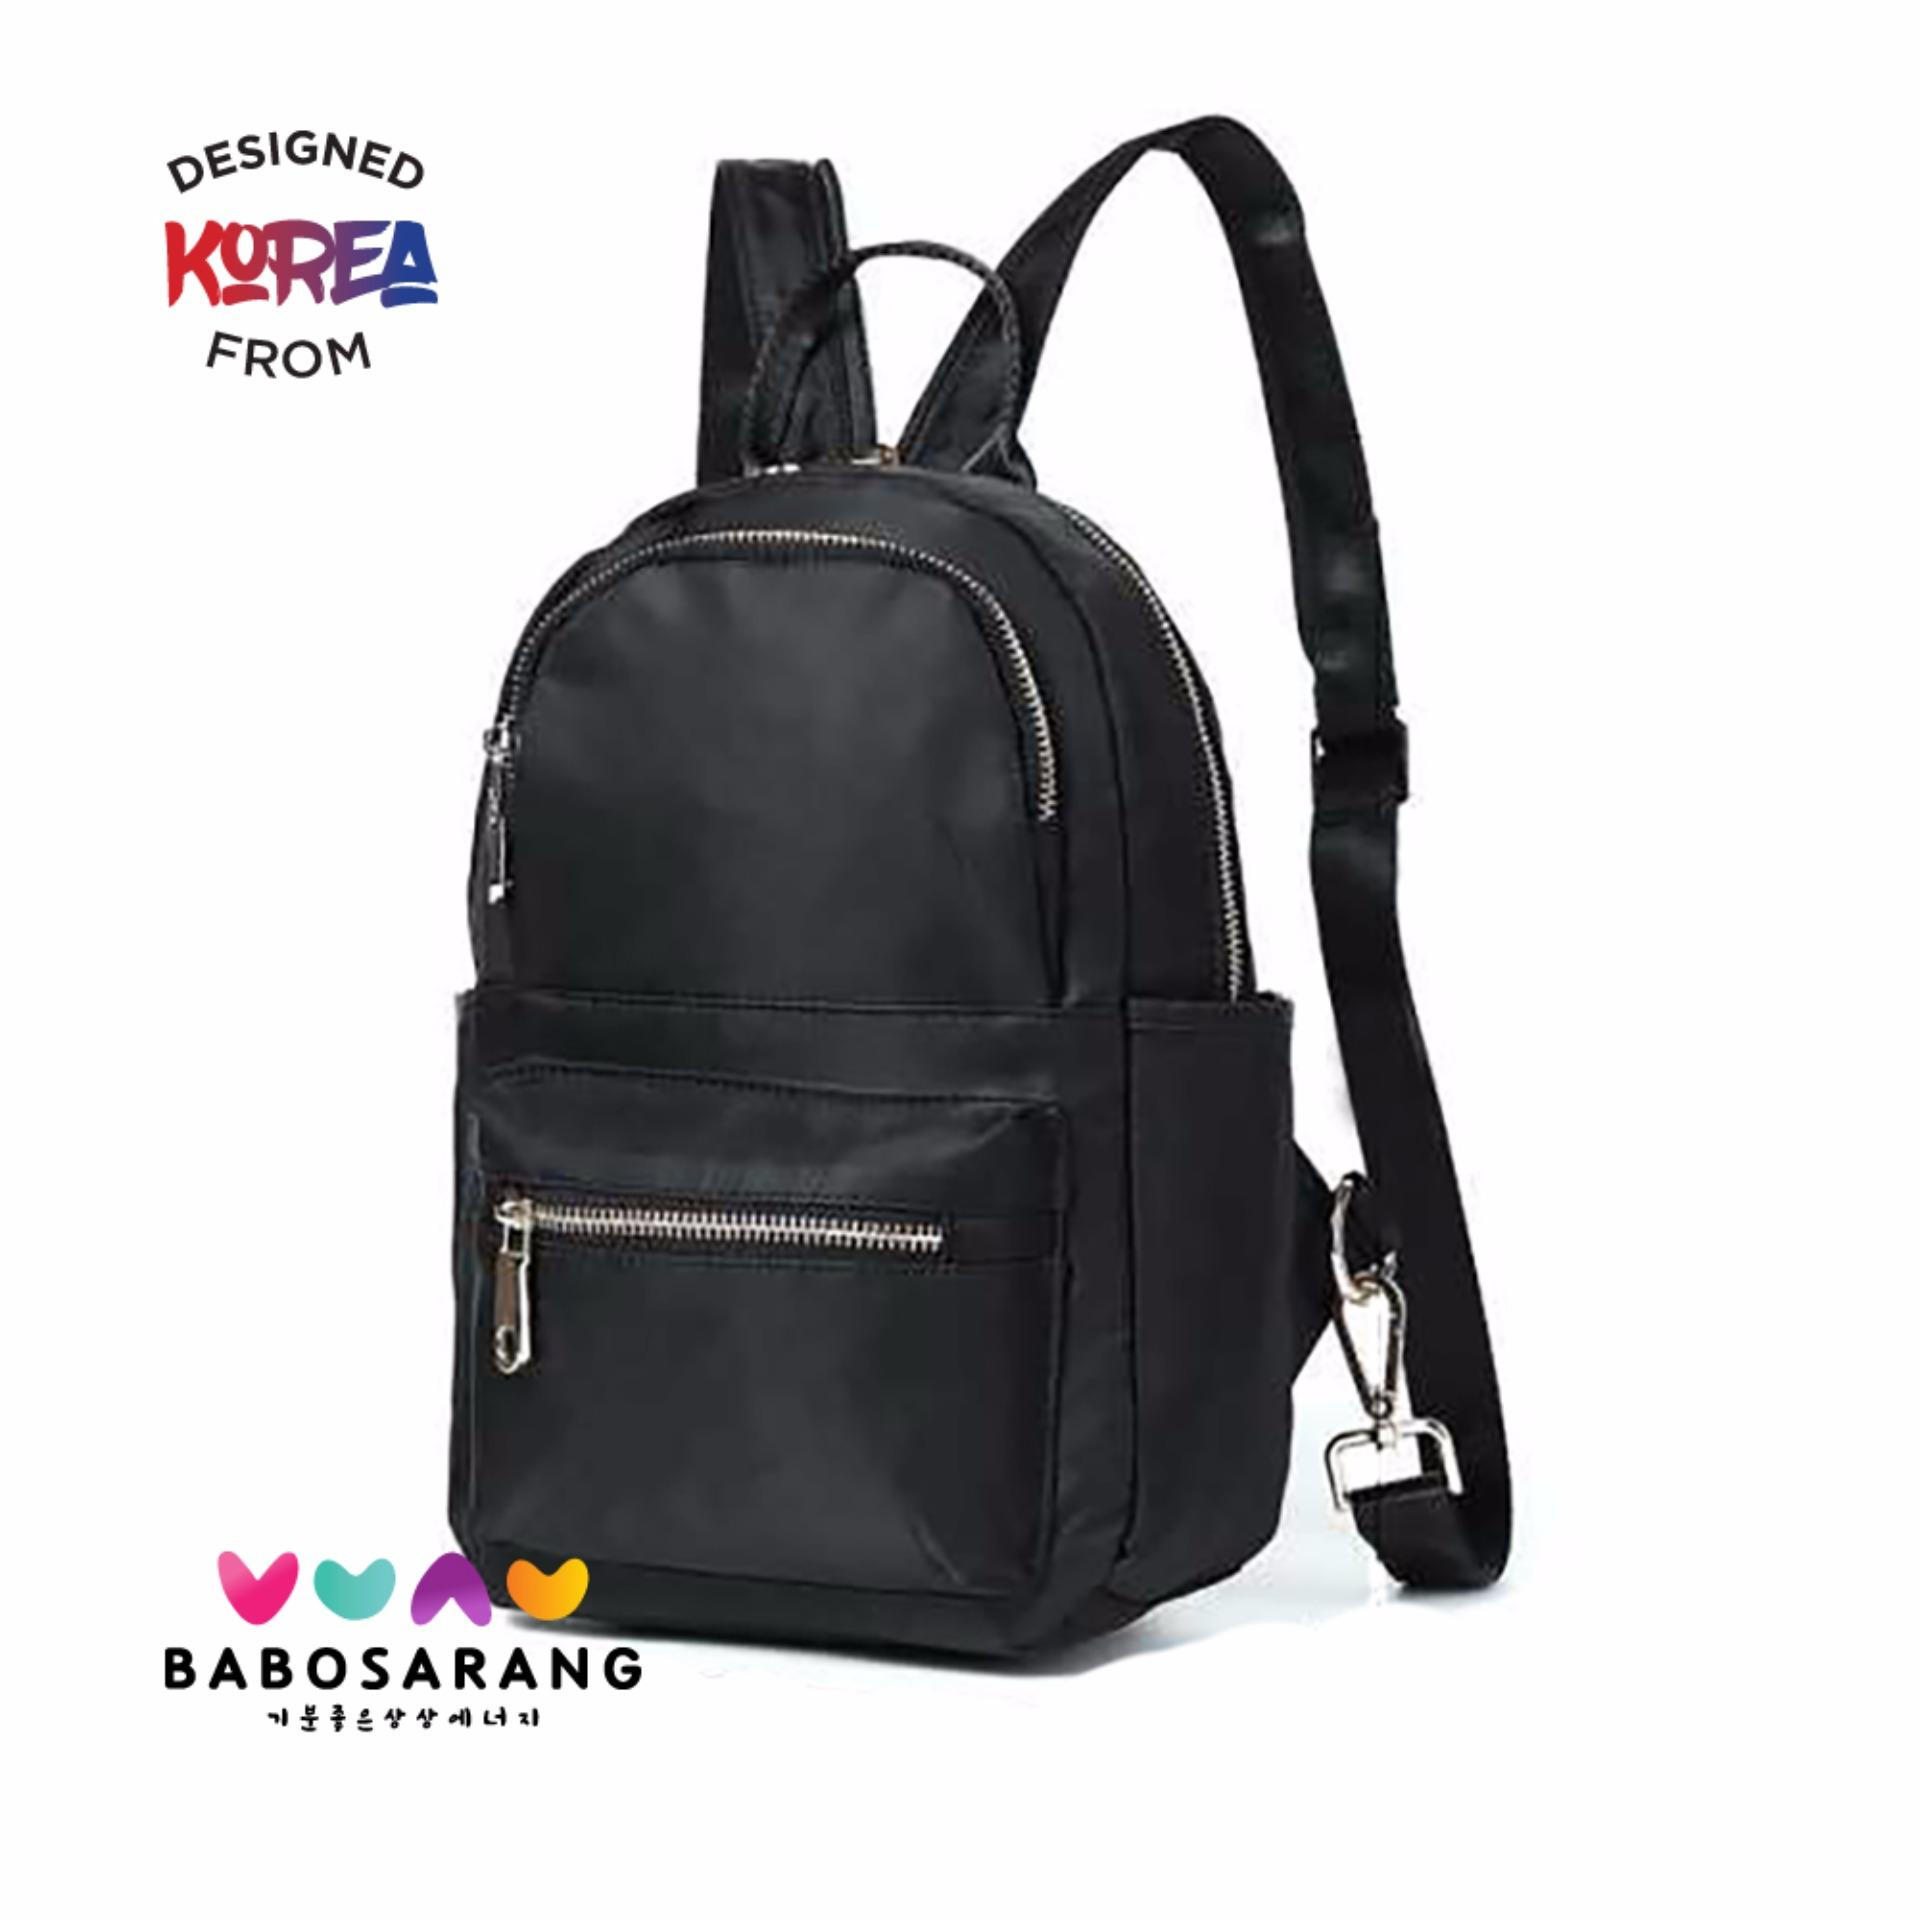 Toko Korean Fashion Style Babosarang Tas Ransel Batam Wanita Backpack Korea Model Fashion Gothic Style Bs2 Online